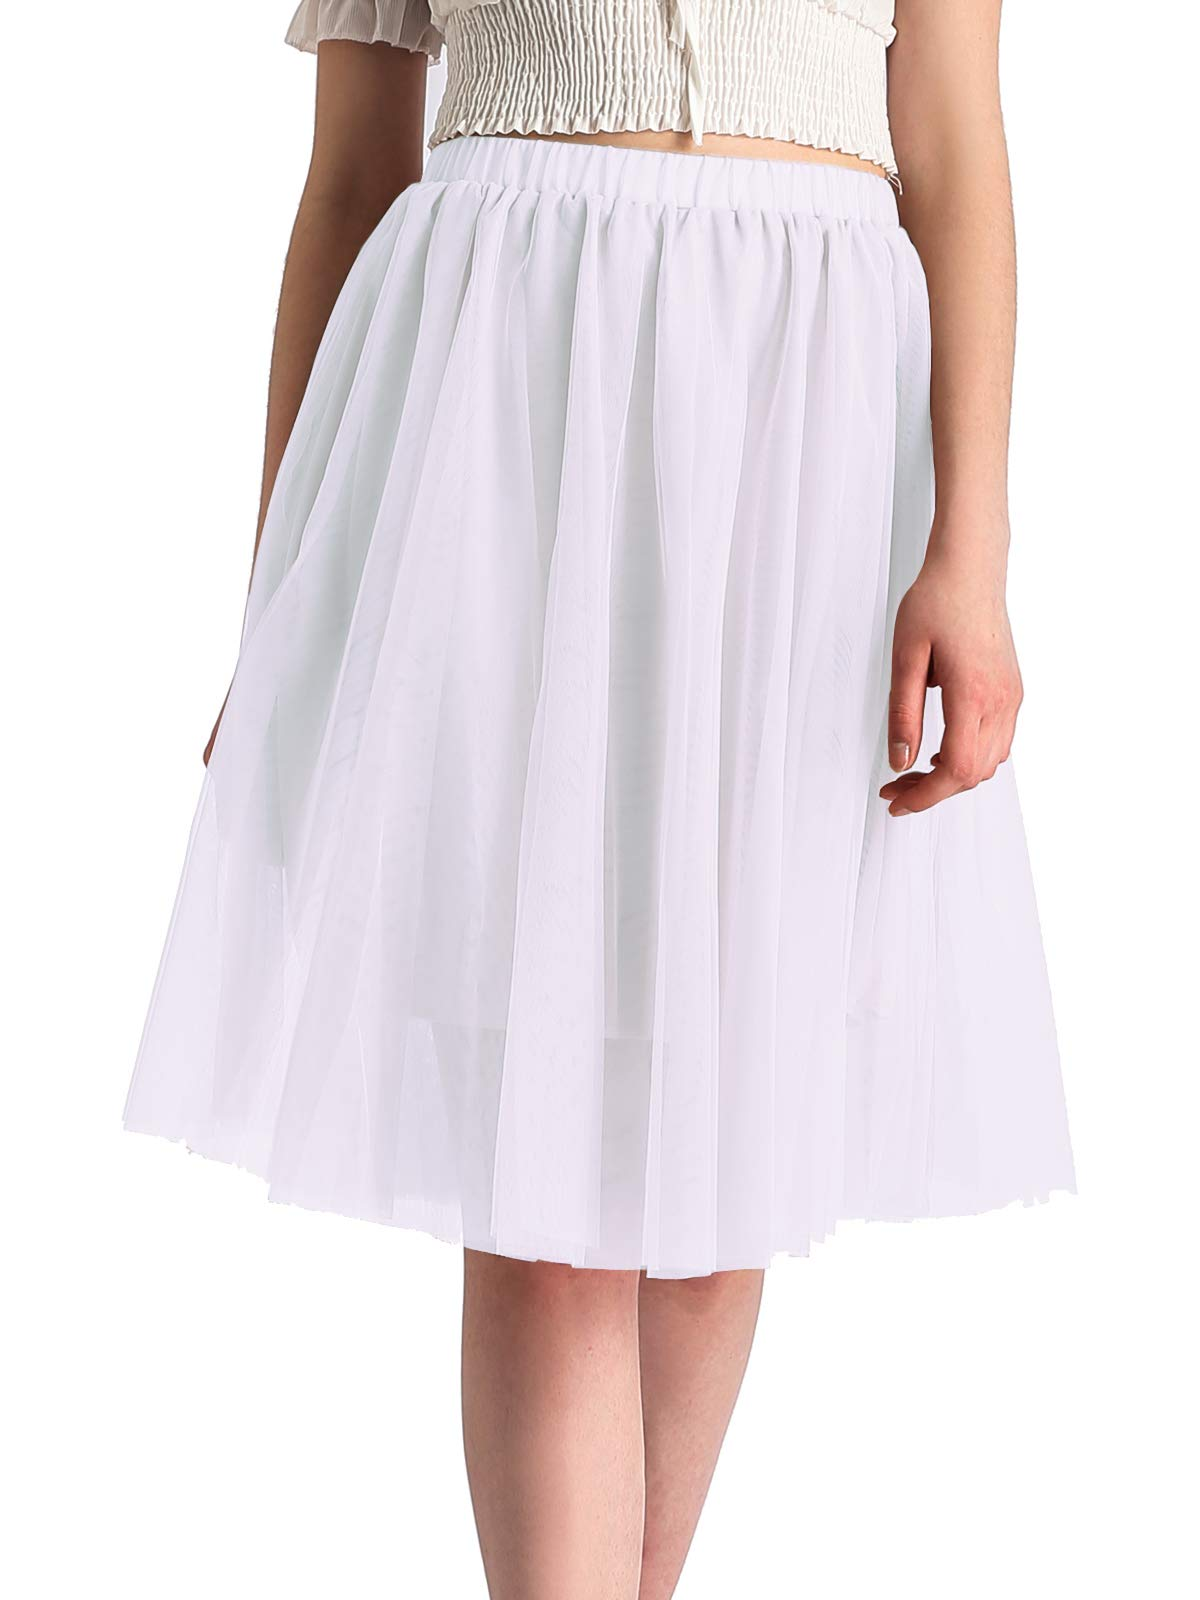 Beluring Womens Summer White Tutu Tulle Skirt Petticoat Underskirt Fashion 2018 One Size